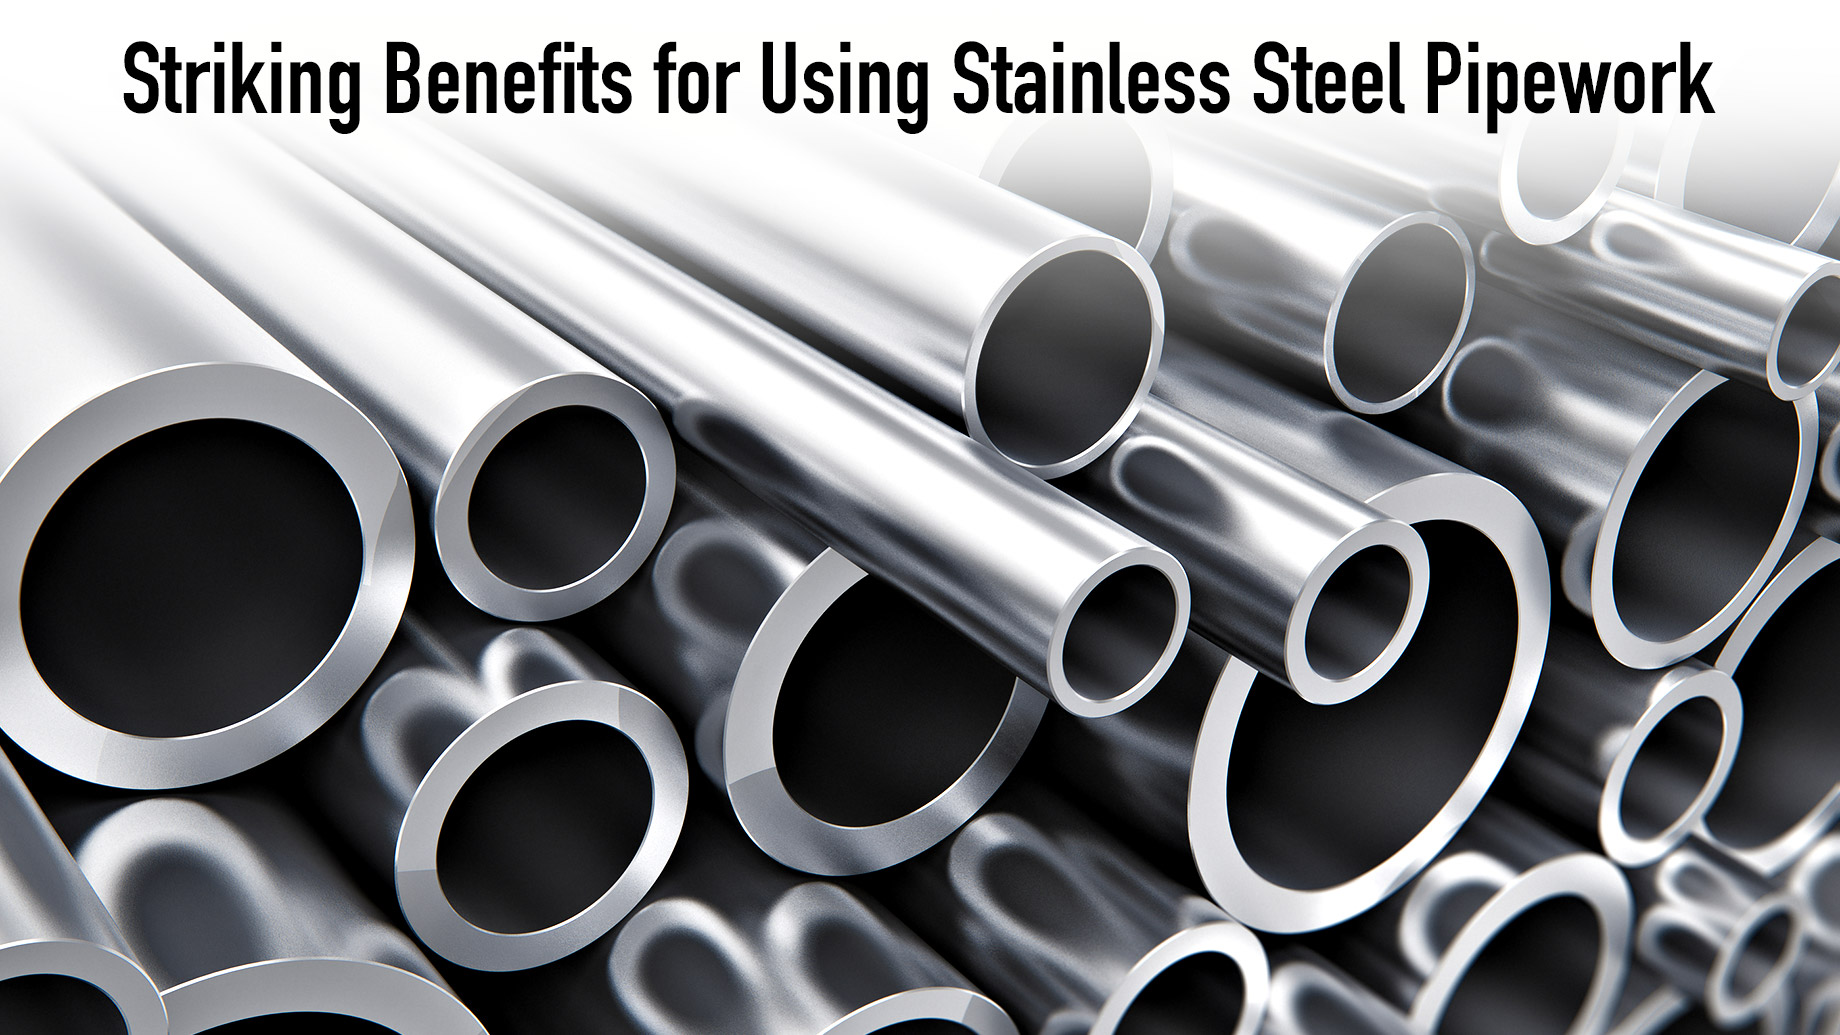 Striking Benefits for Using Stainless Steel Pipework